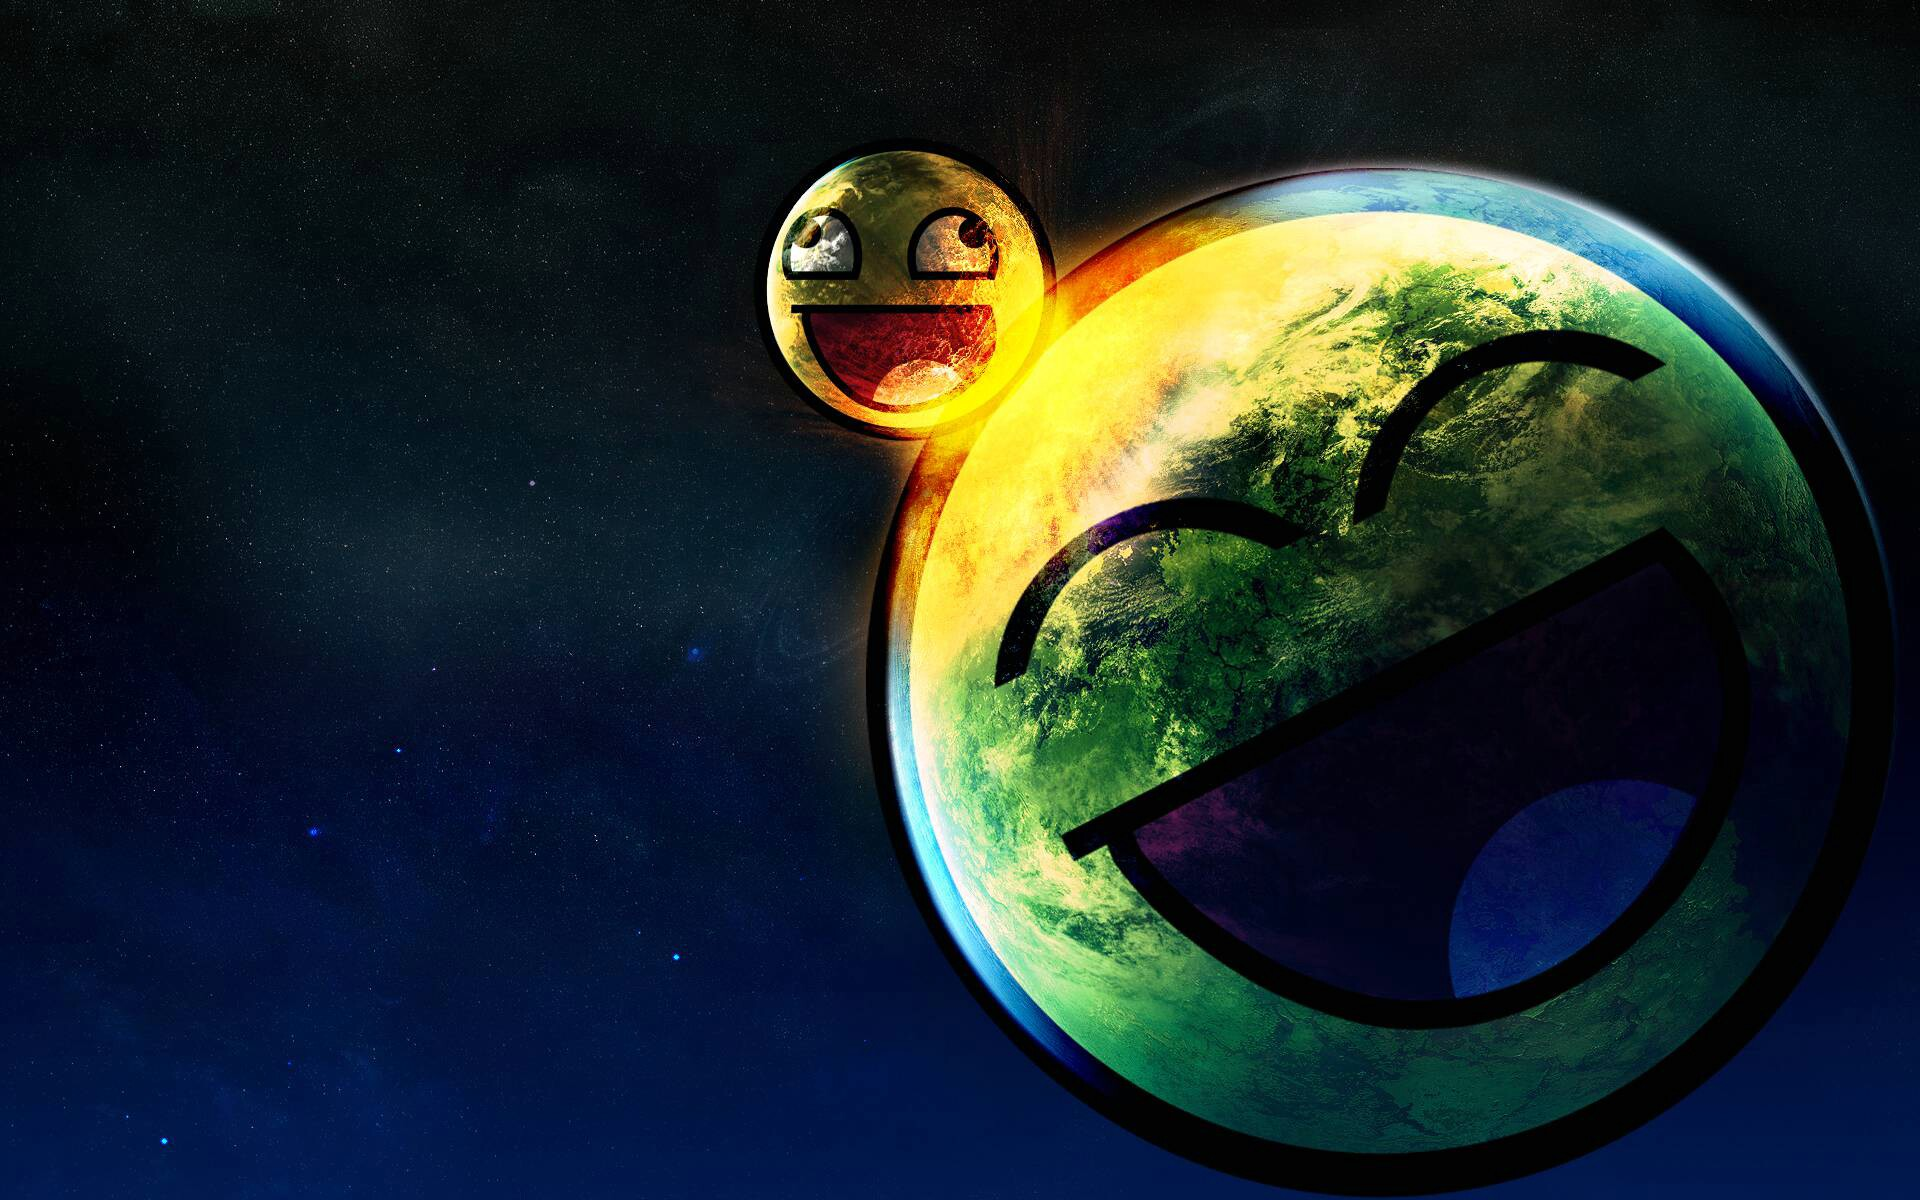 Free Download Awesome Wallpaper Wallpapers Photo 1920x1200